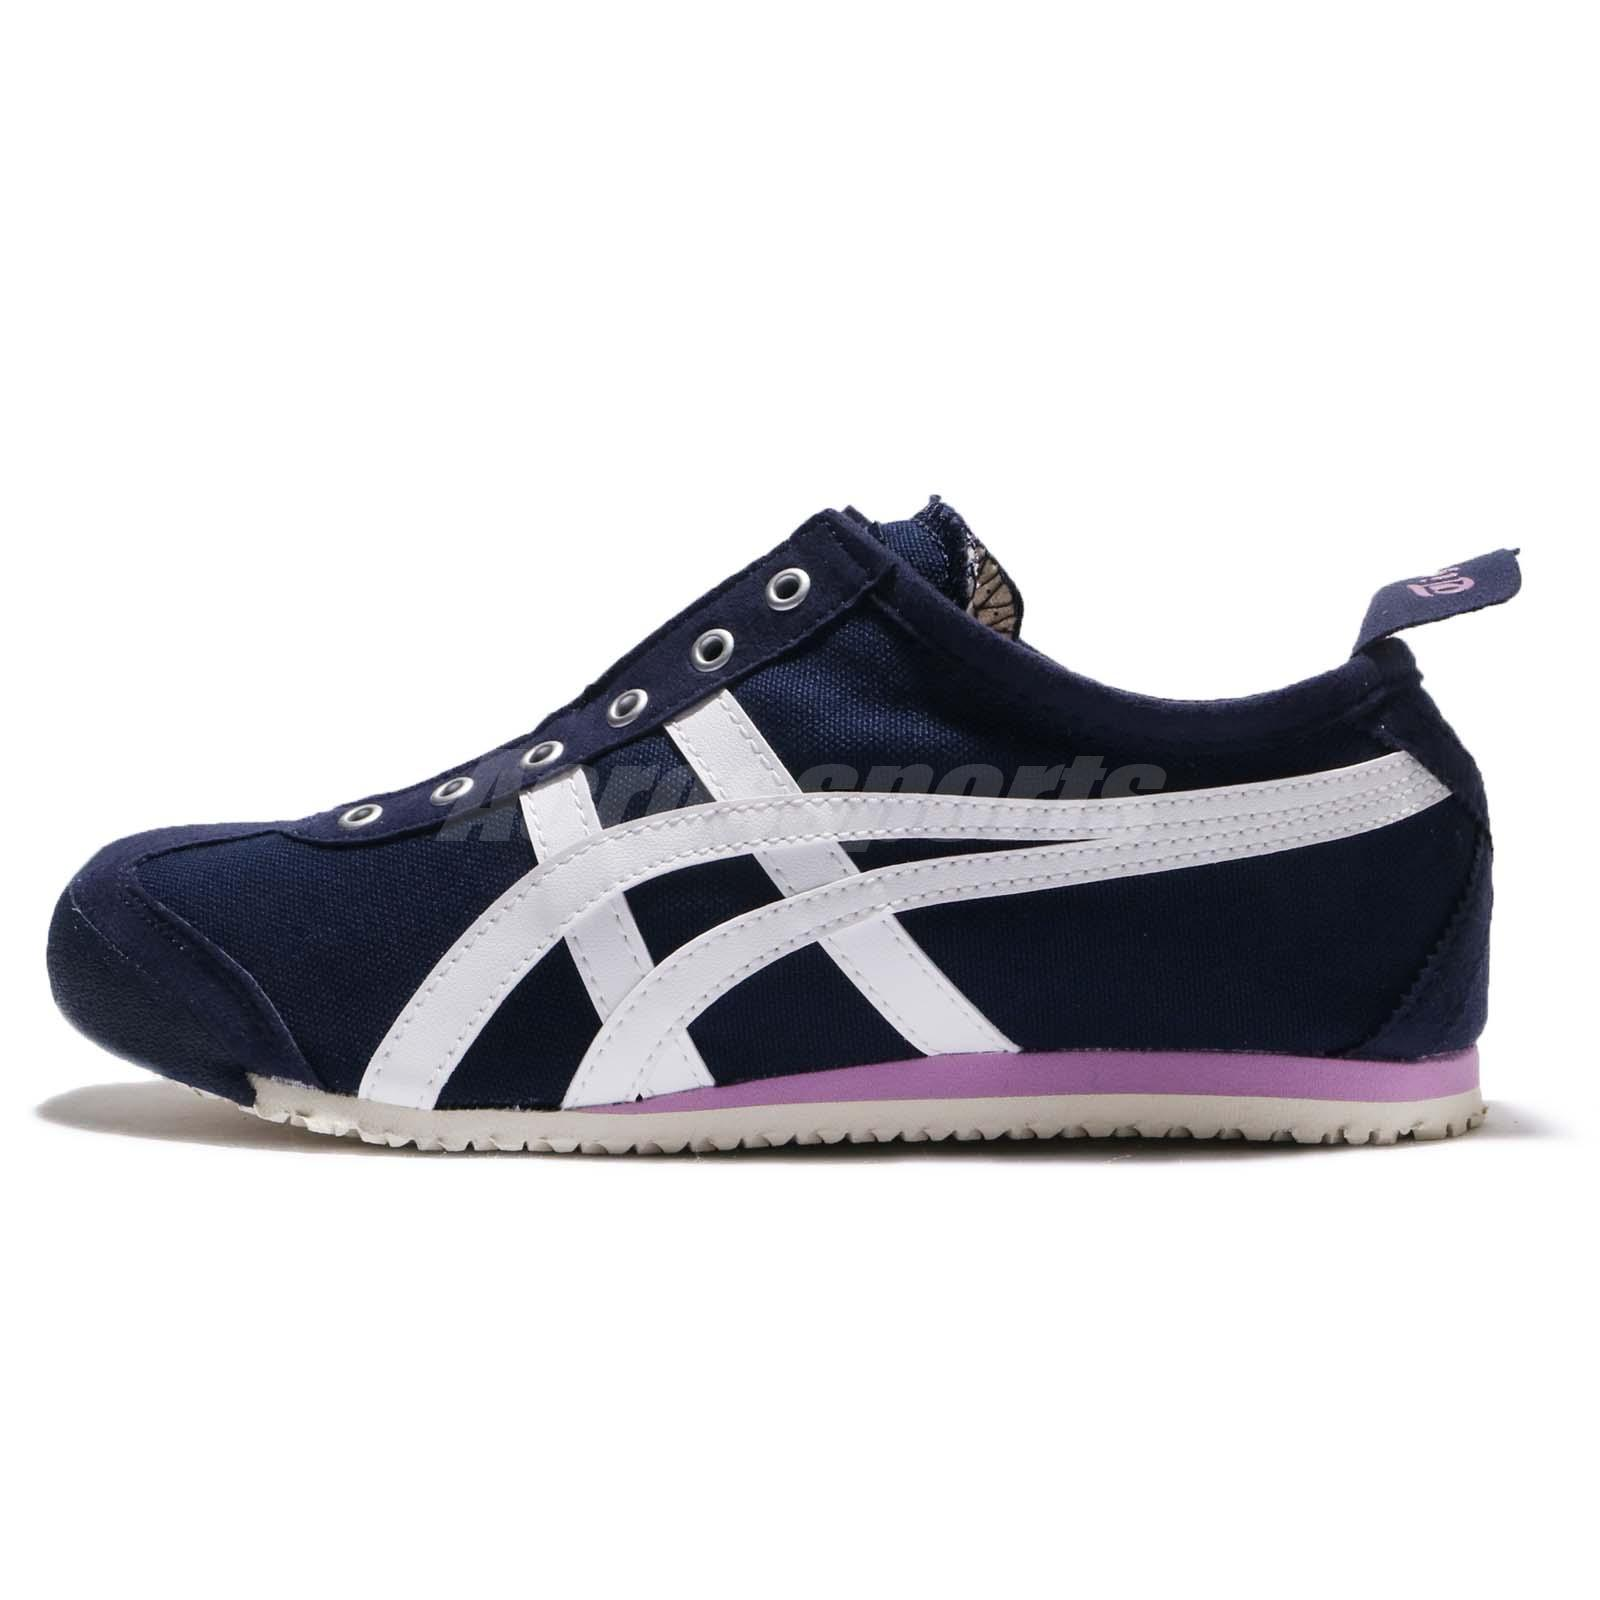 onitsuka tiger mexico 66 black and pink uruguay venta